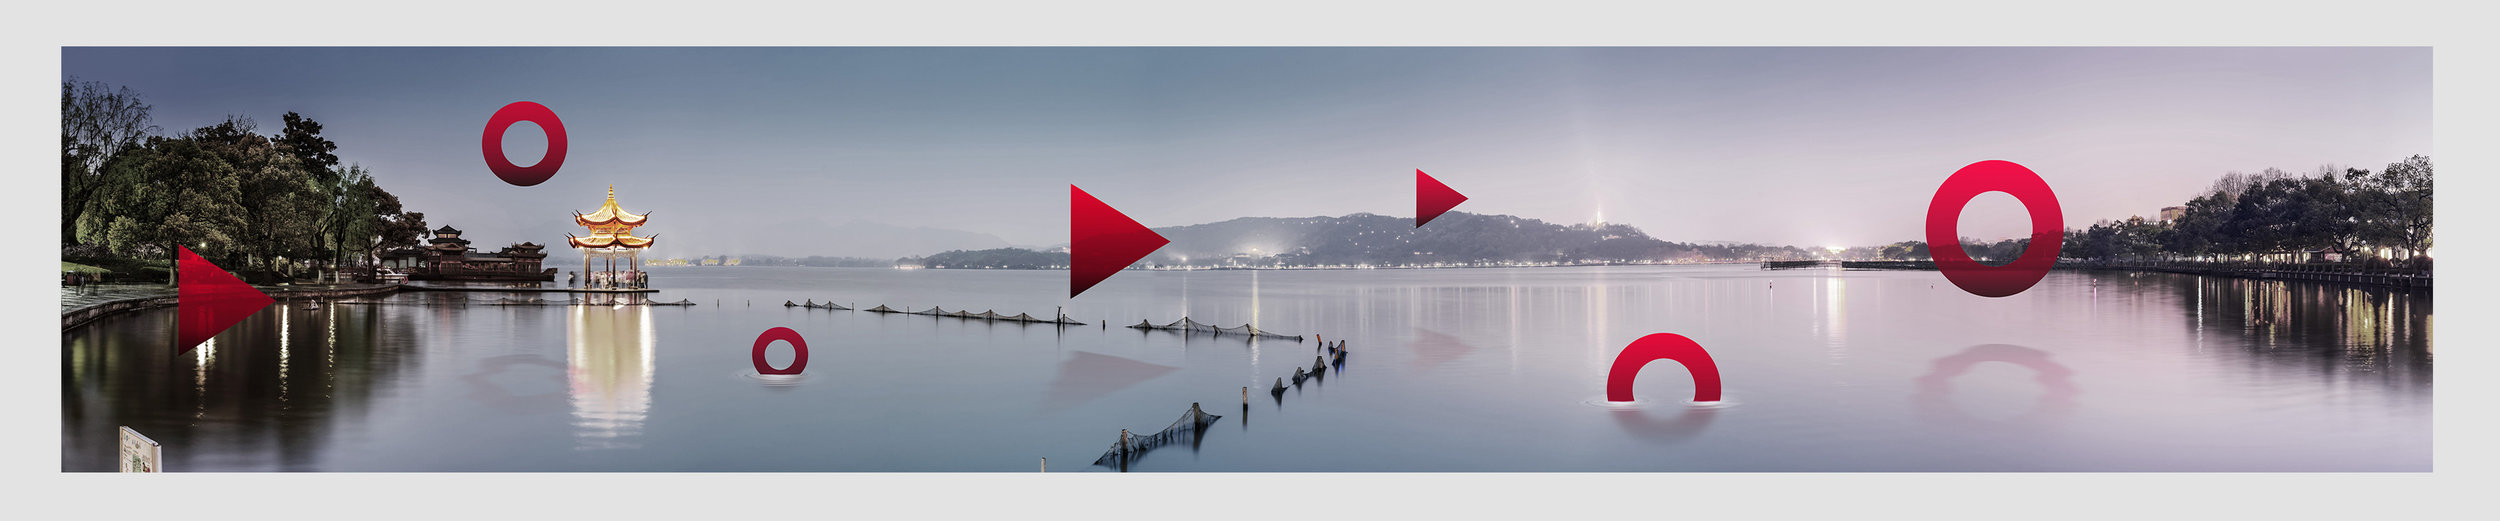 HIKVISION    Office Wall Artwork - In the frame:  West Lake -12 x 2 Metre Large Format Artwork